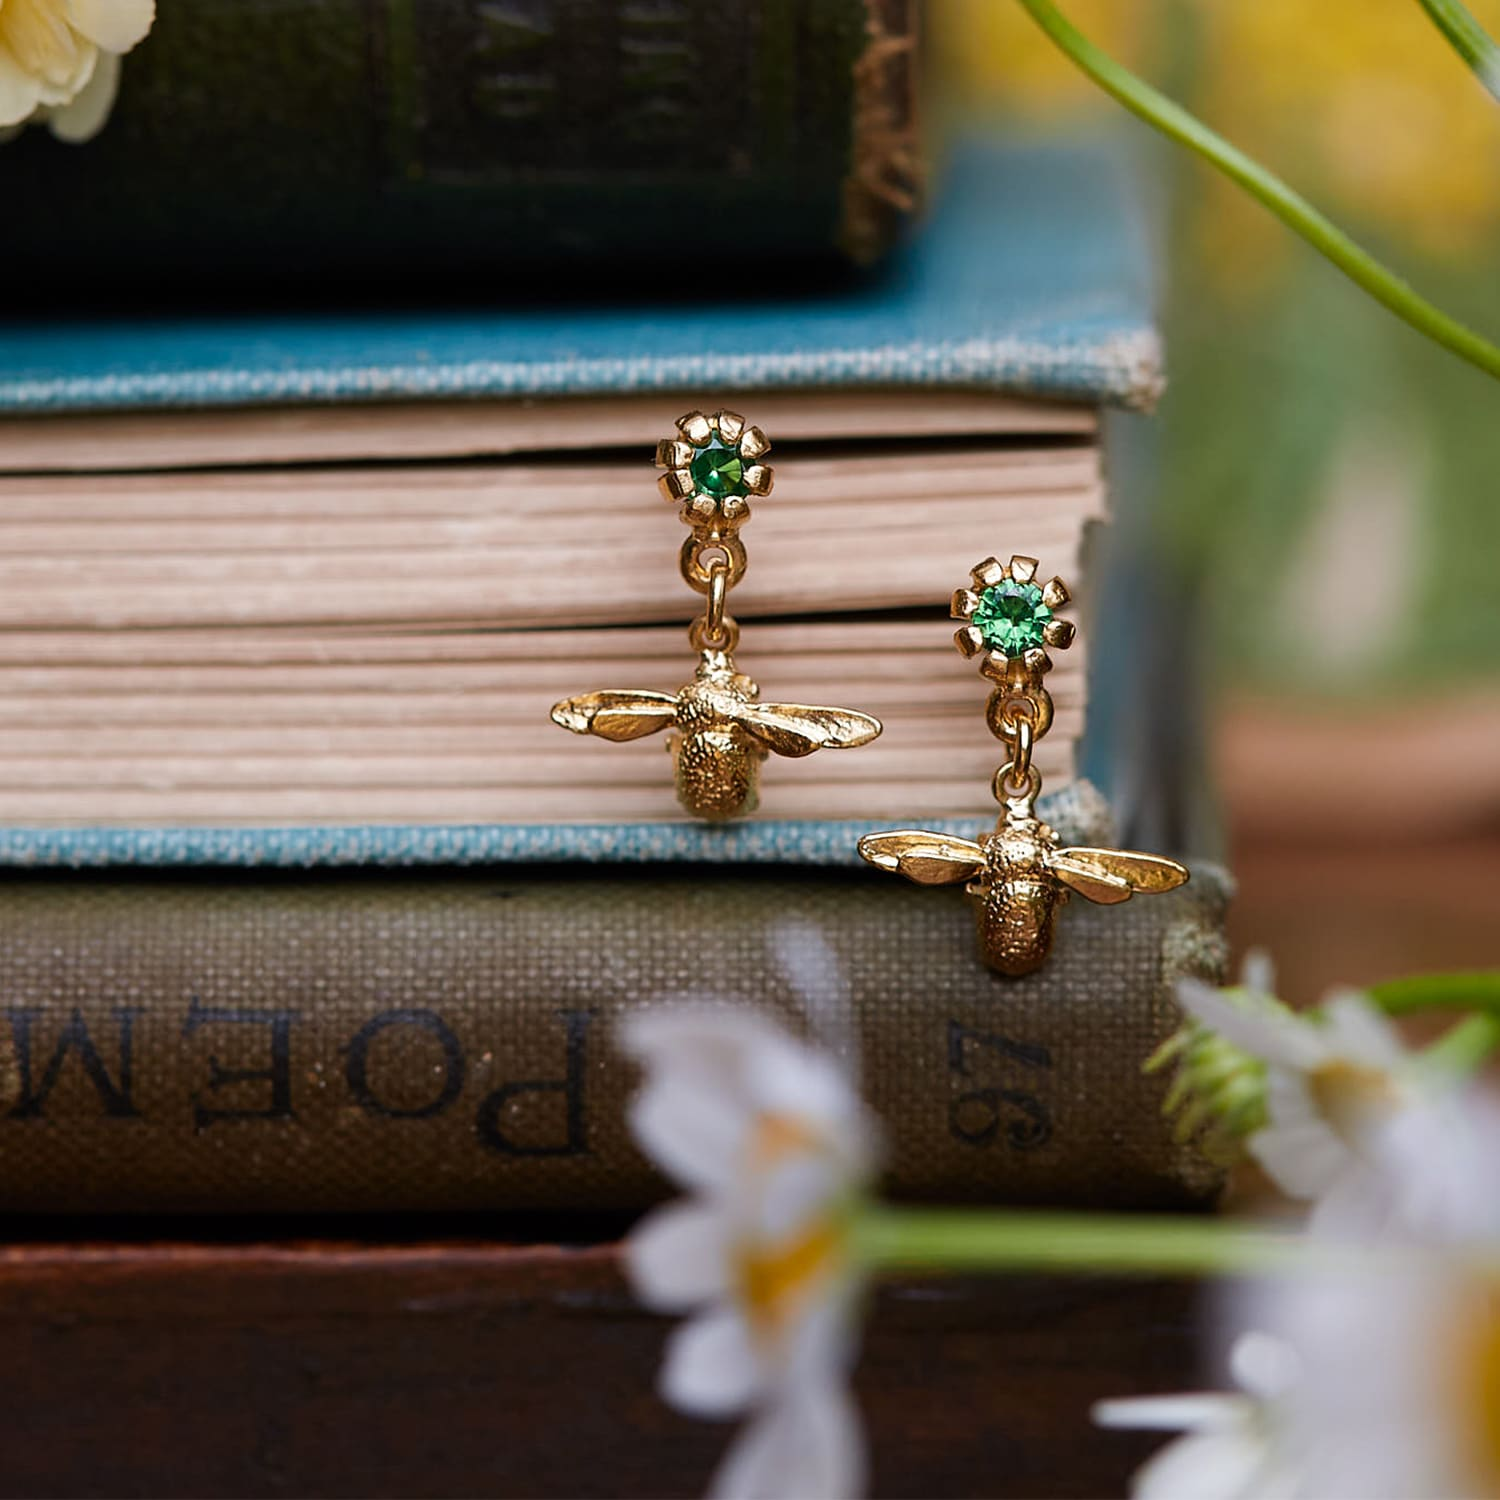 limited edition yellow gold plated bee earrings with radiant green tsavorite gemstones for Earth Day